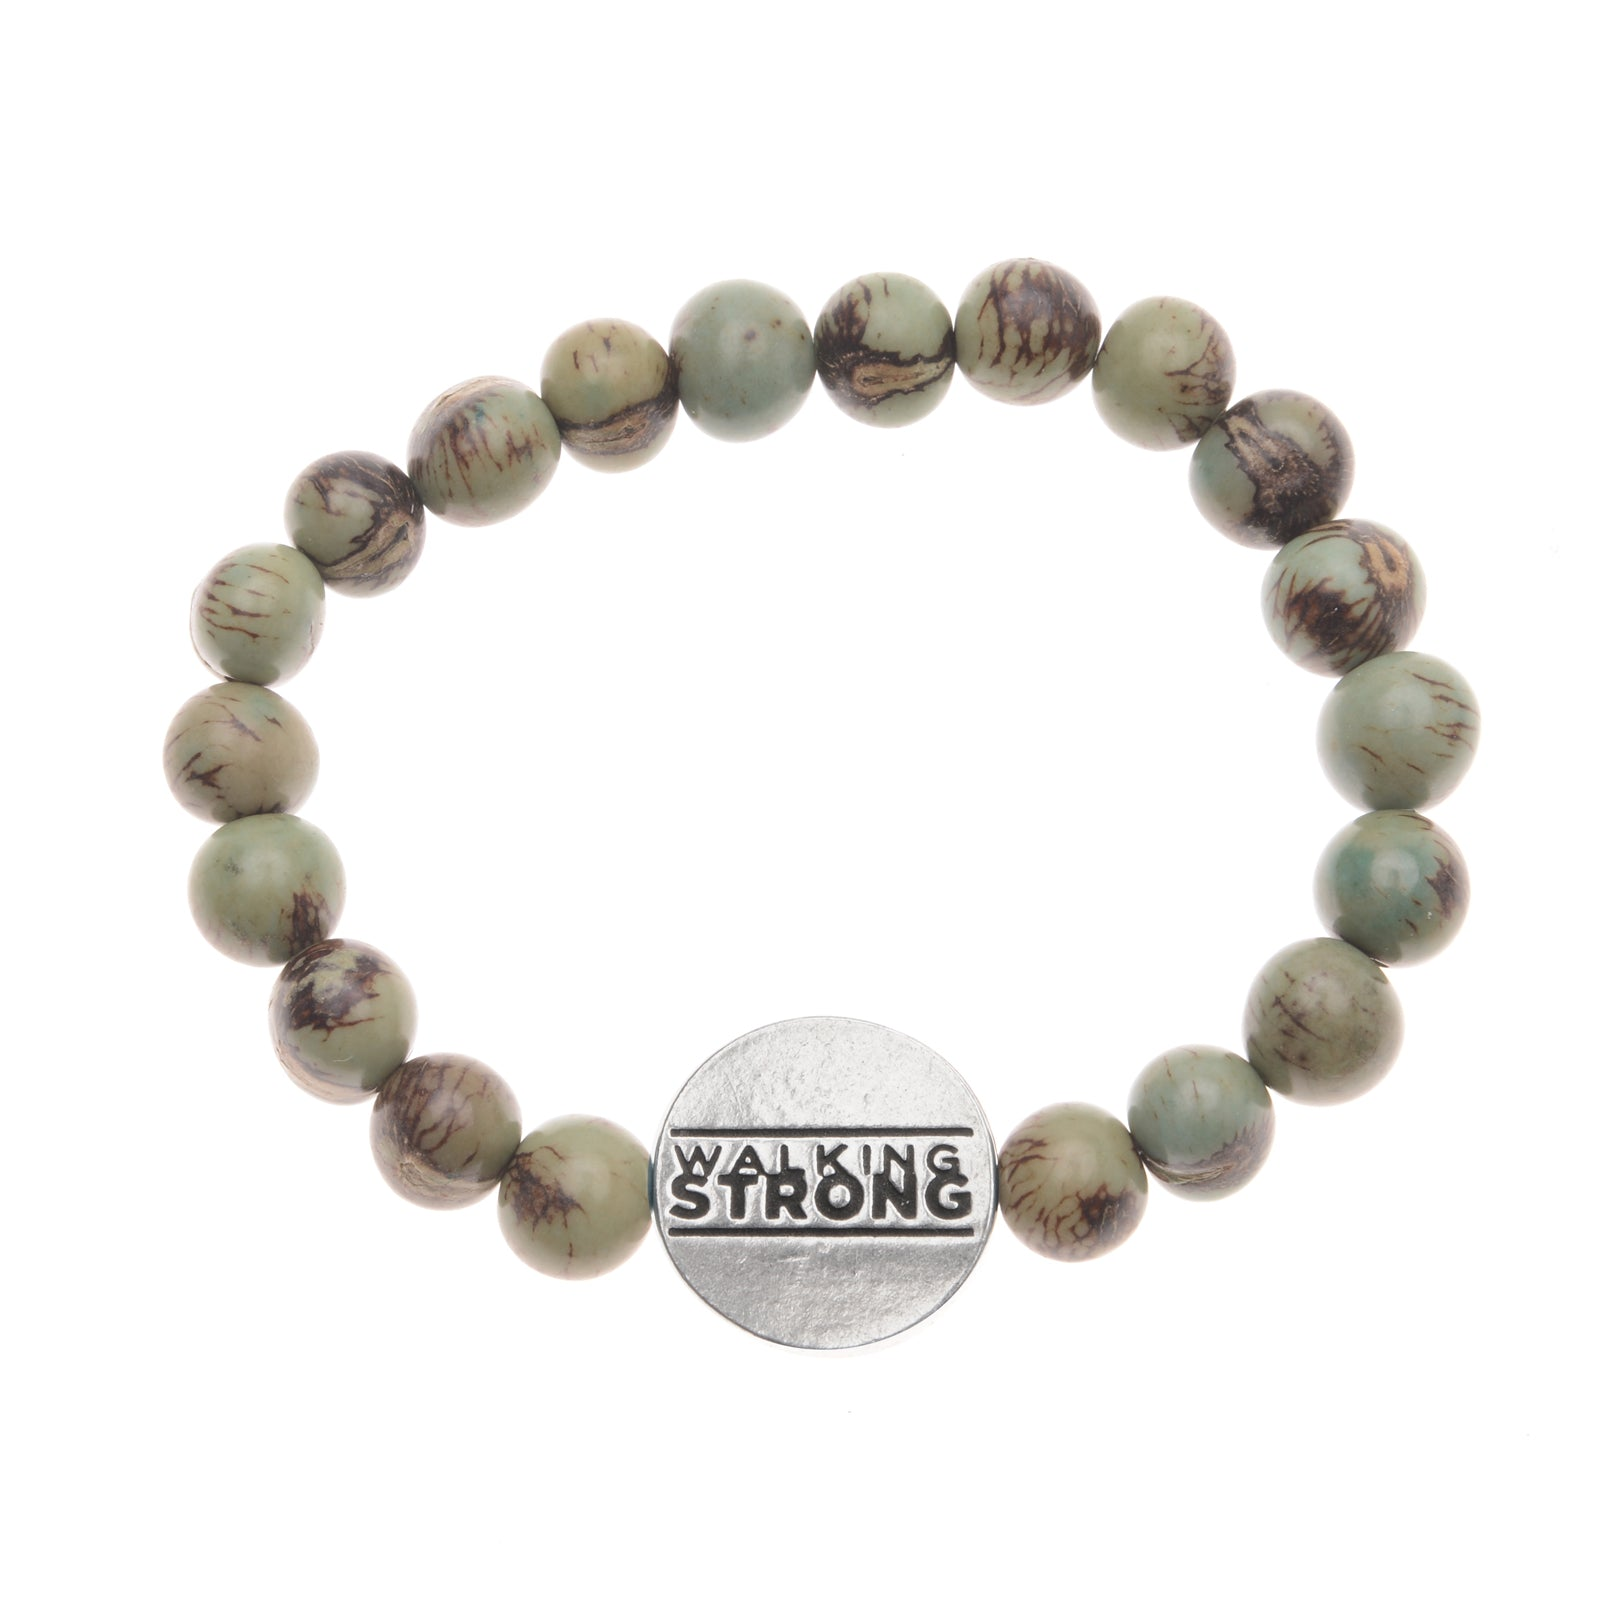 Walking Strong Bracelet - Tiger Aqua ACAI Seeds of Life Bracelet